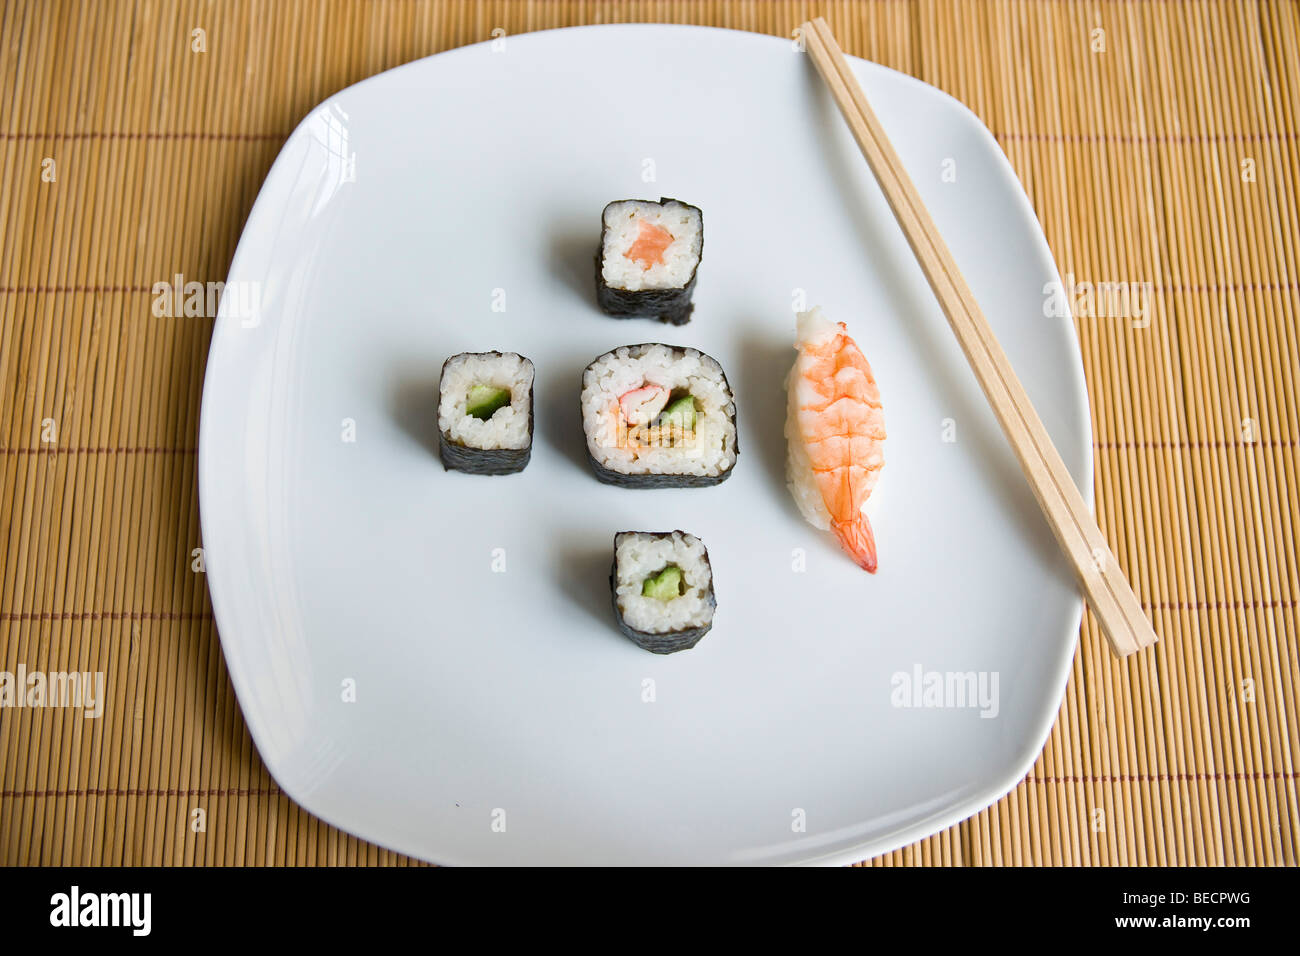 Different kinds of sushi and chopsticks on a plate - Stock Image